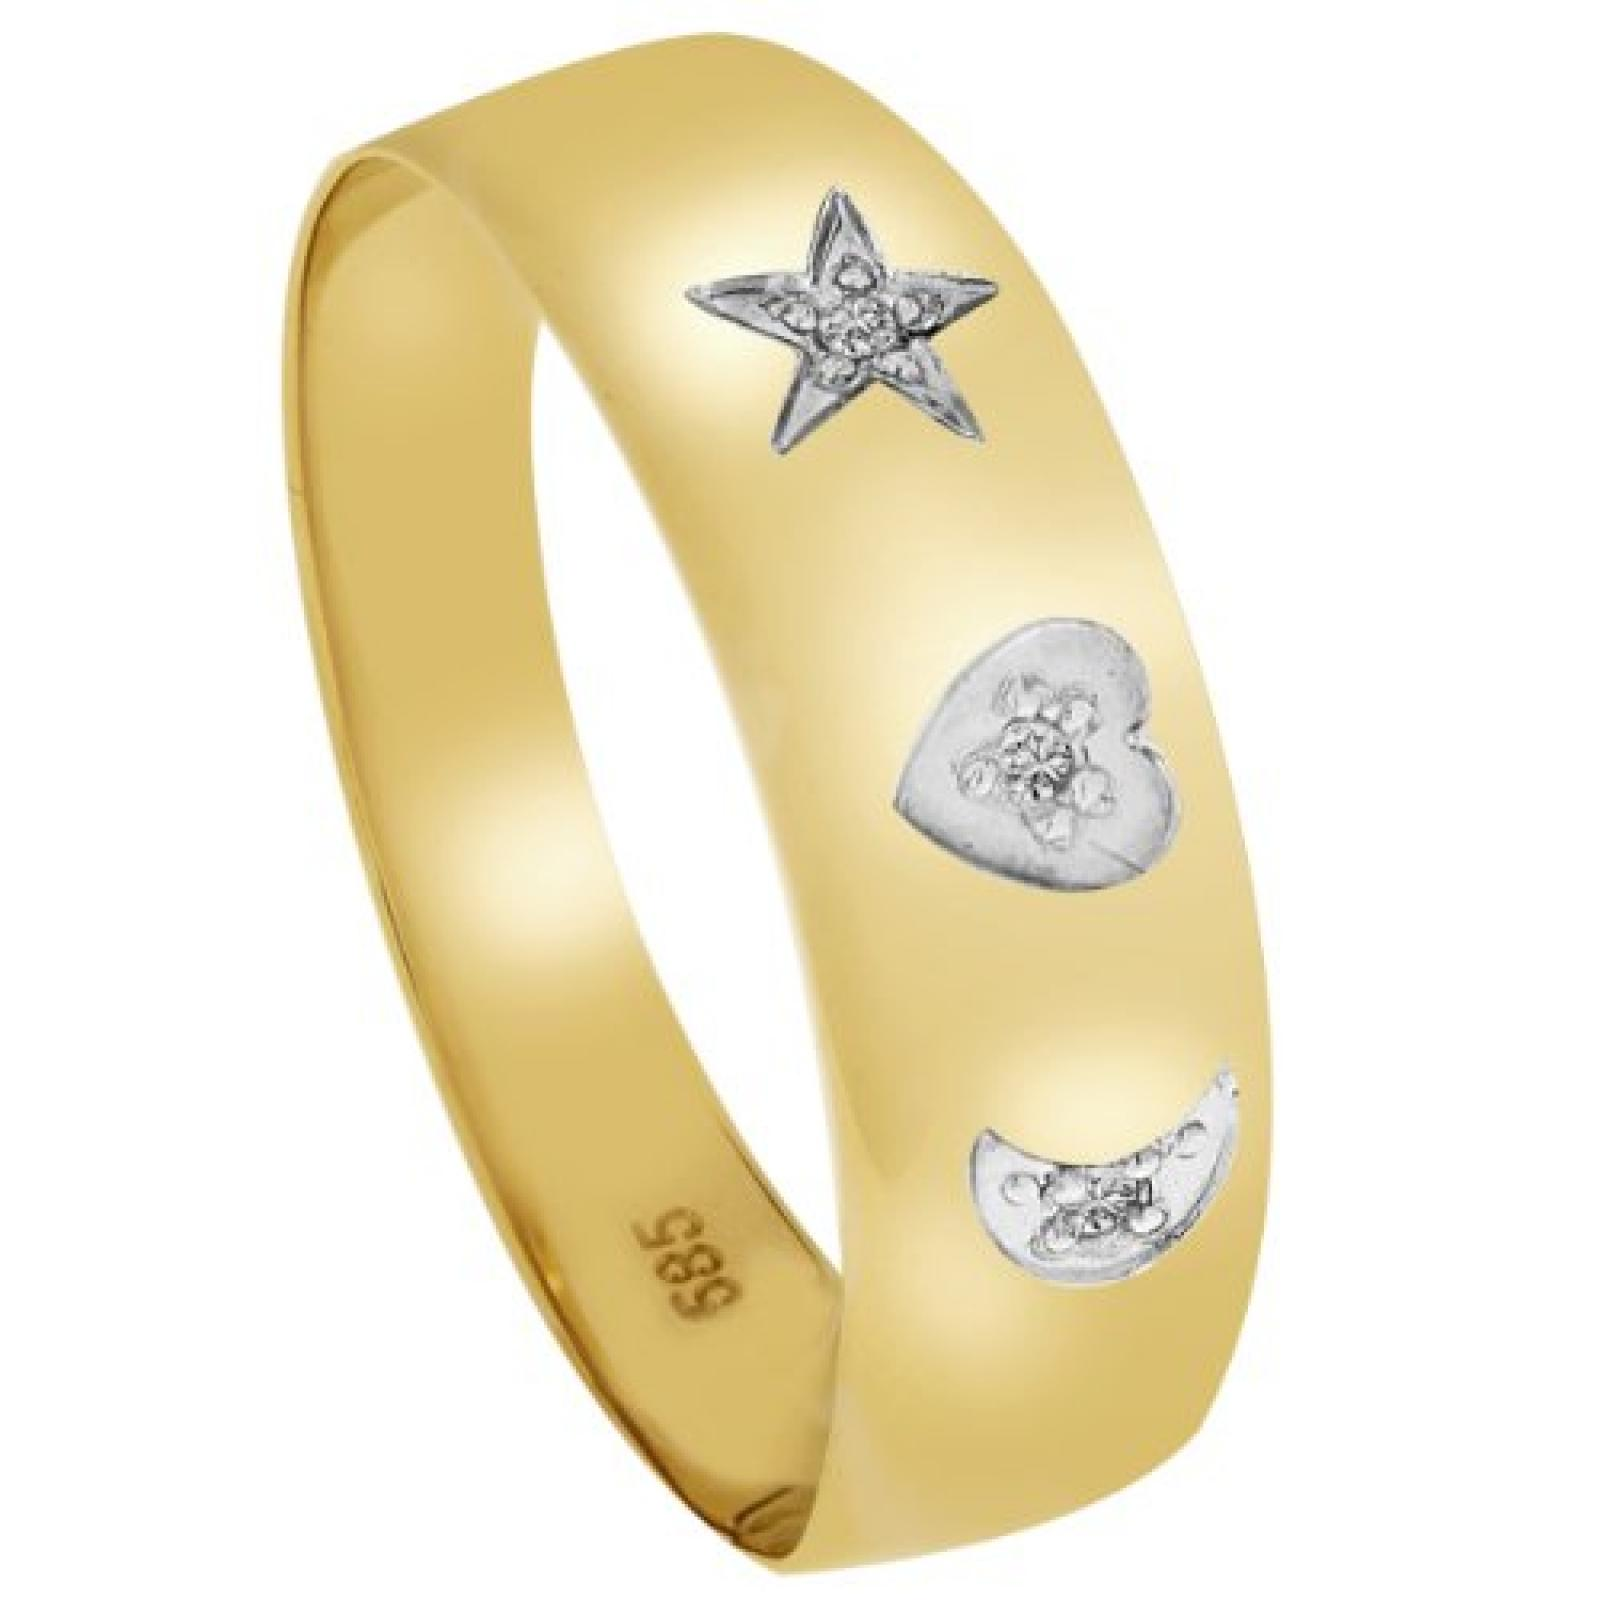 Bella Donna Damen-Ring 585 Gelbgold teilrhodiniert 3 Diamanten